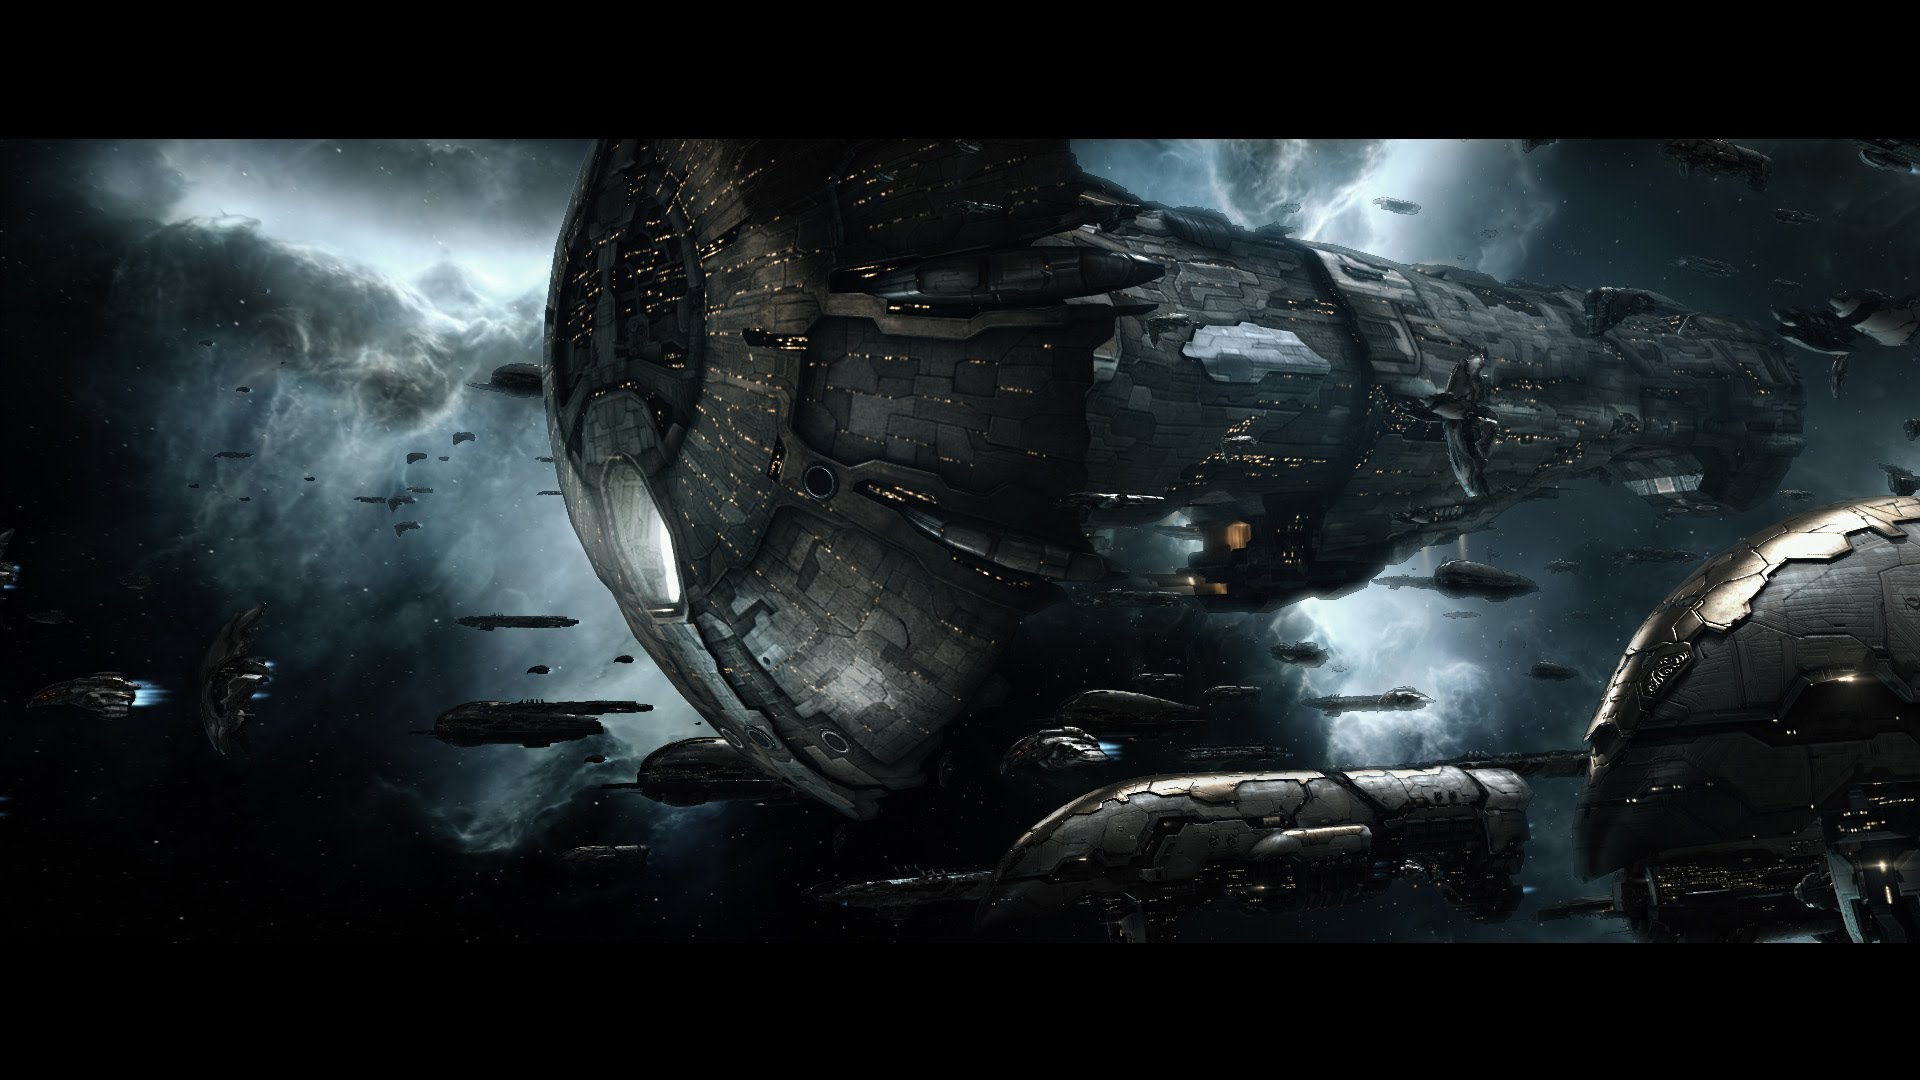 EVE Online: The Prophecy (Fanfest 2014 Trailer) - Duration: 3 minutes, 47 seconds.